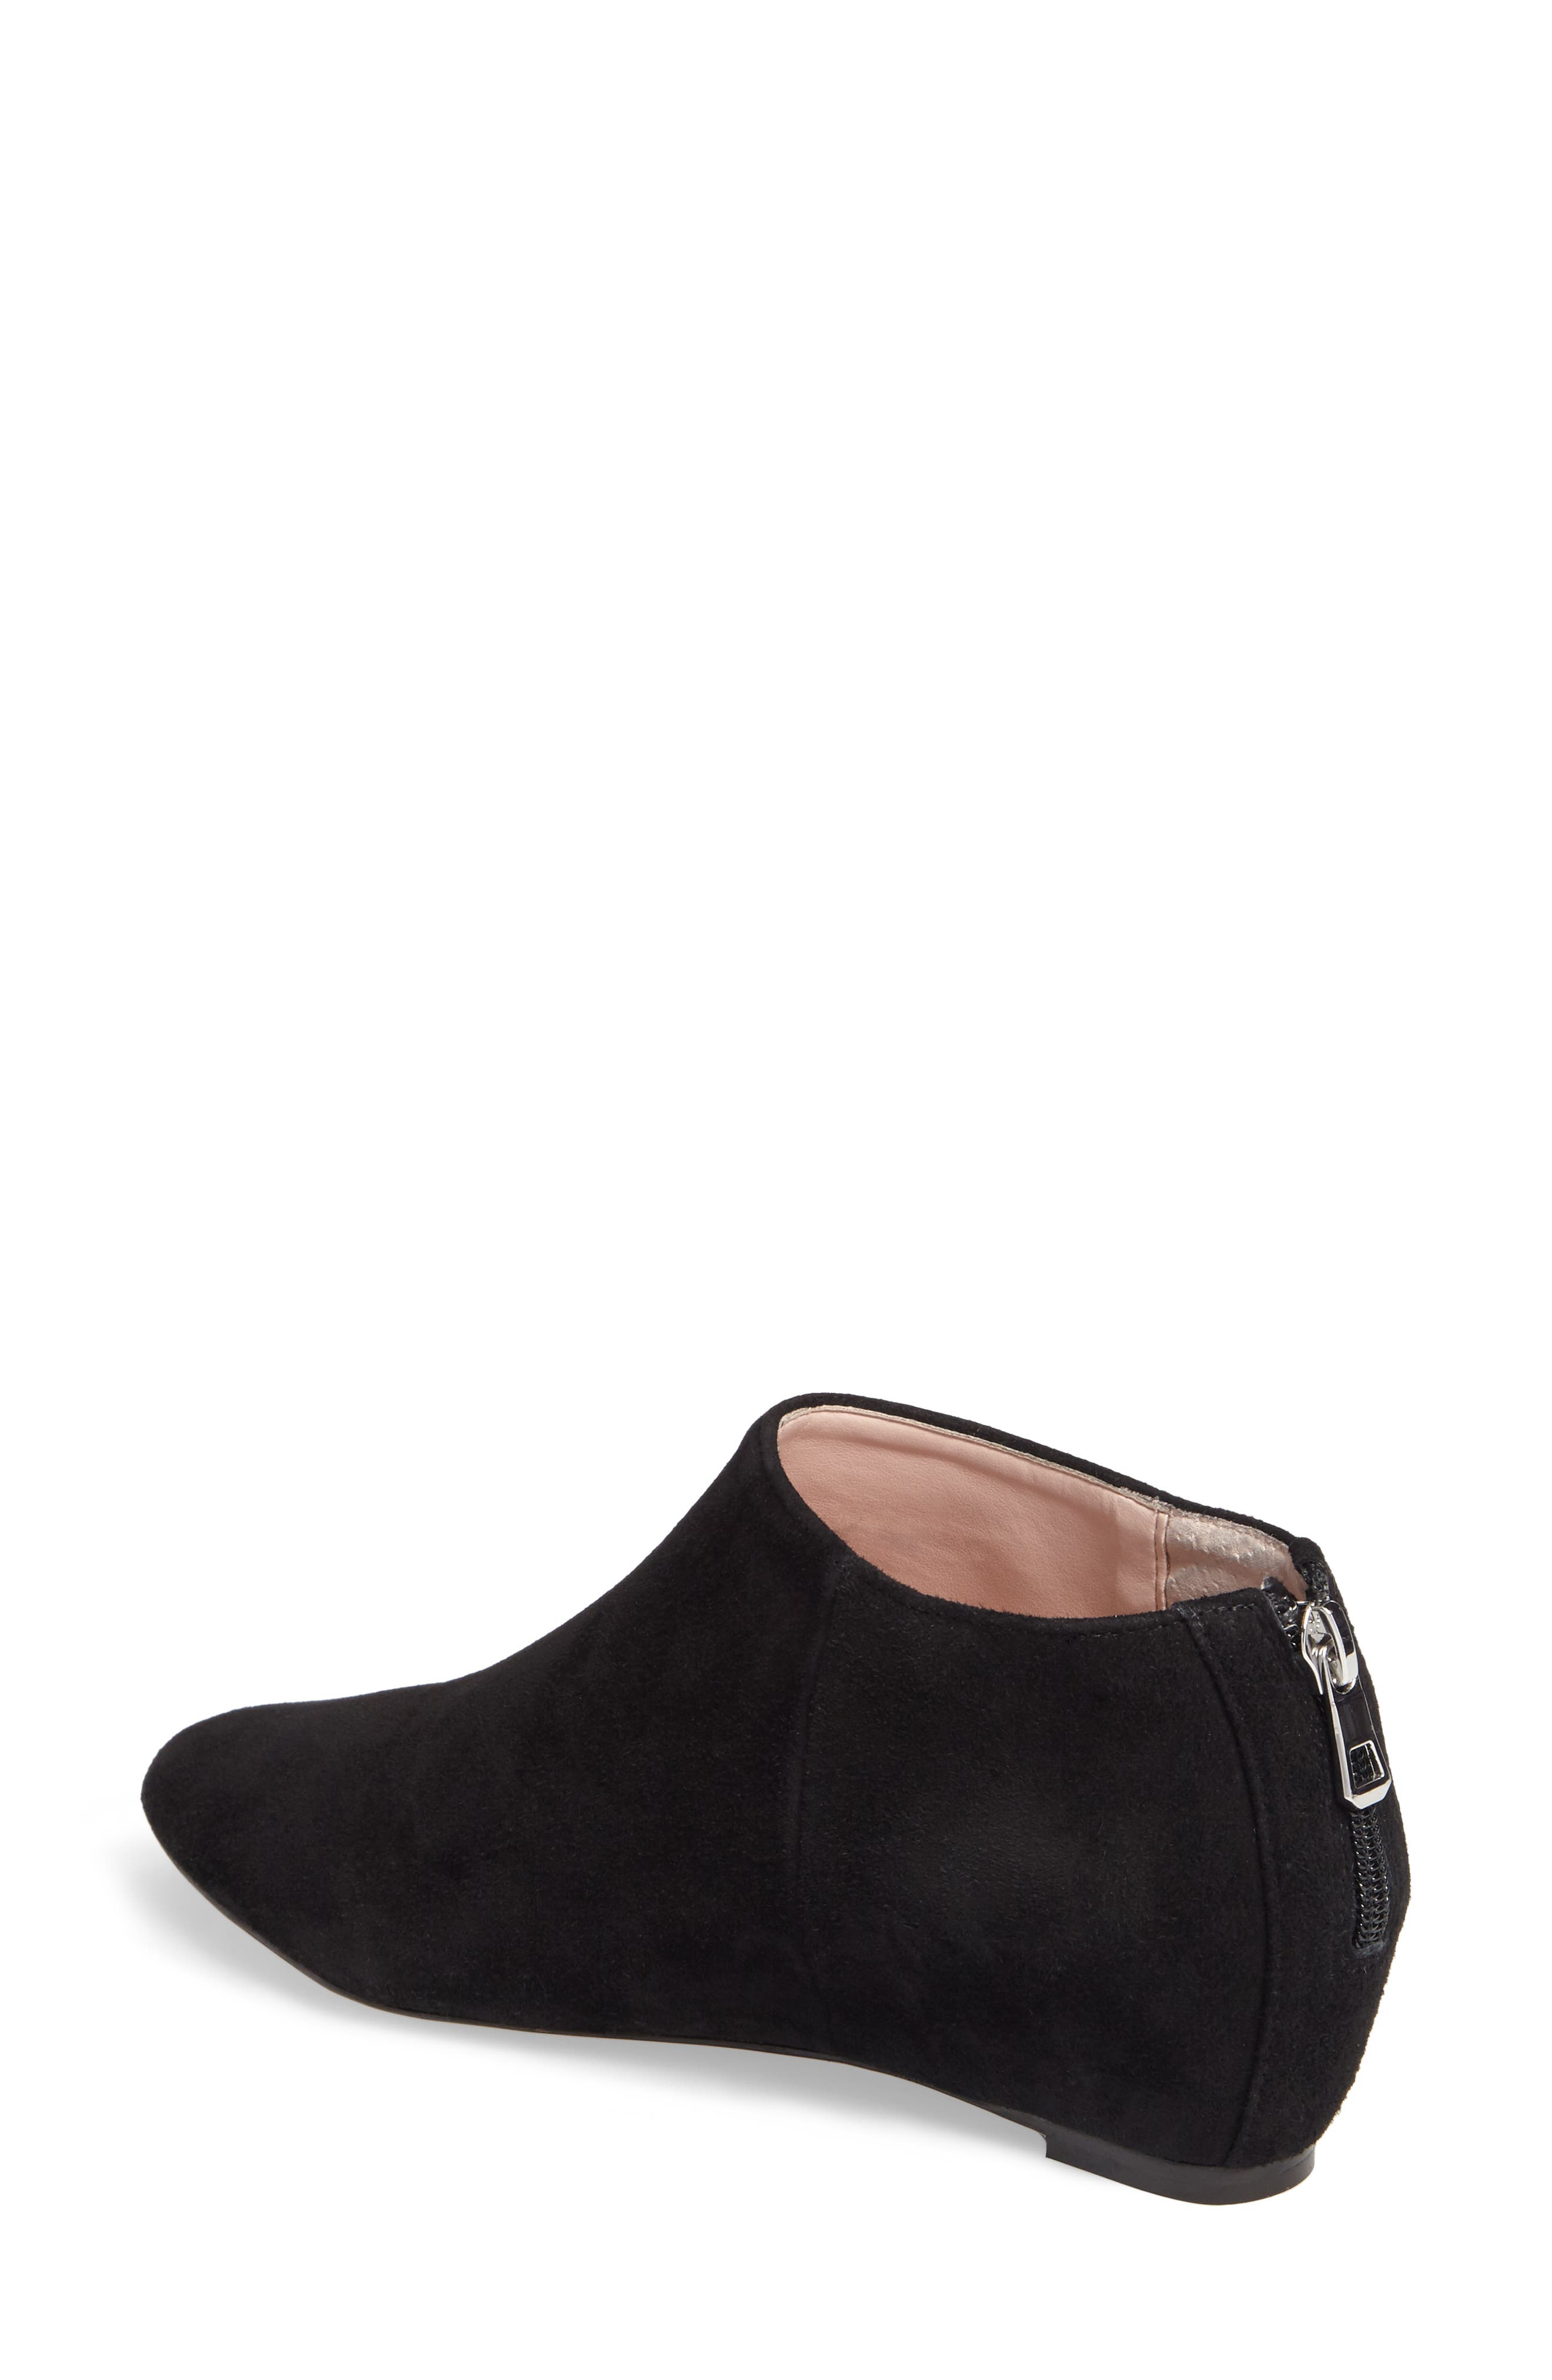 Aves Les Filles Beatrice Ankle Boot,                             Alternate thumbnail 5, color,